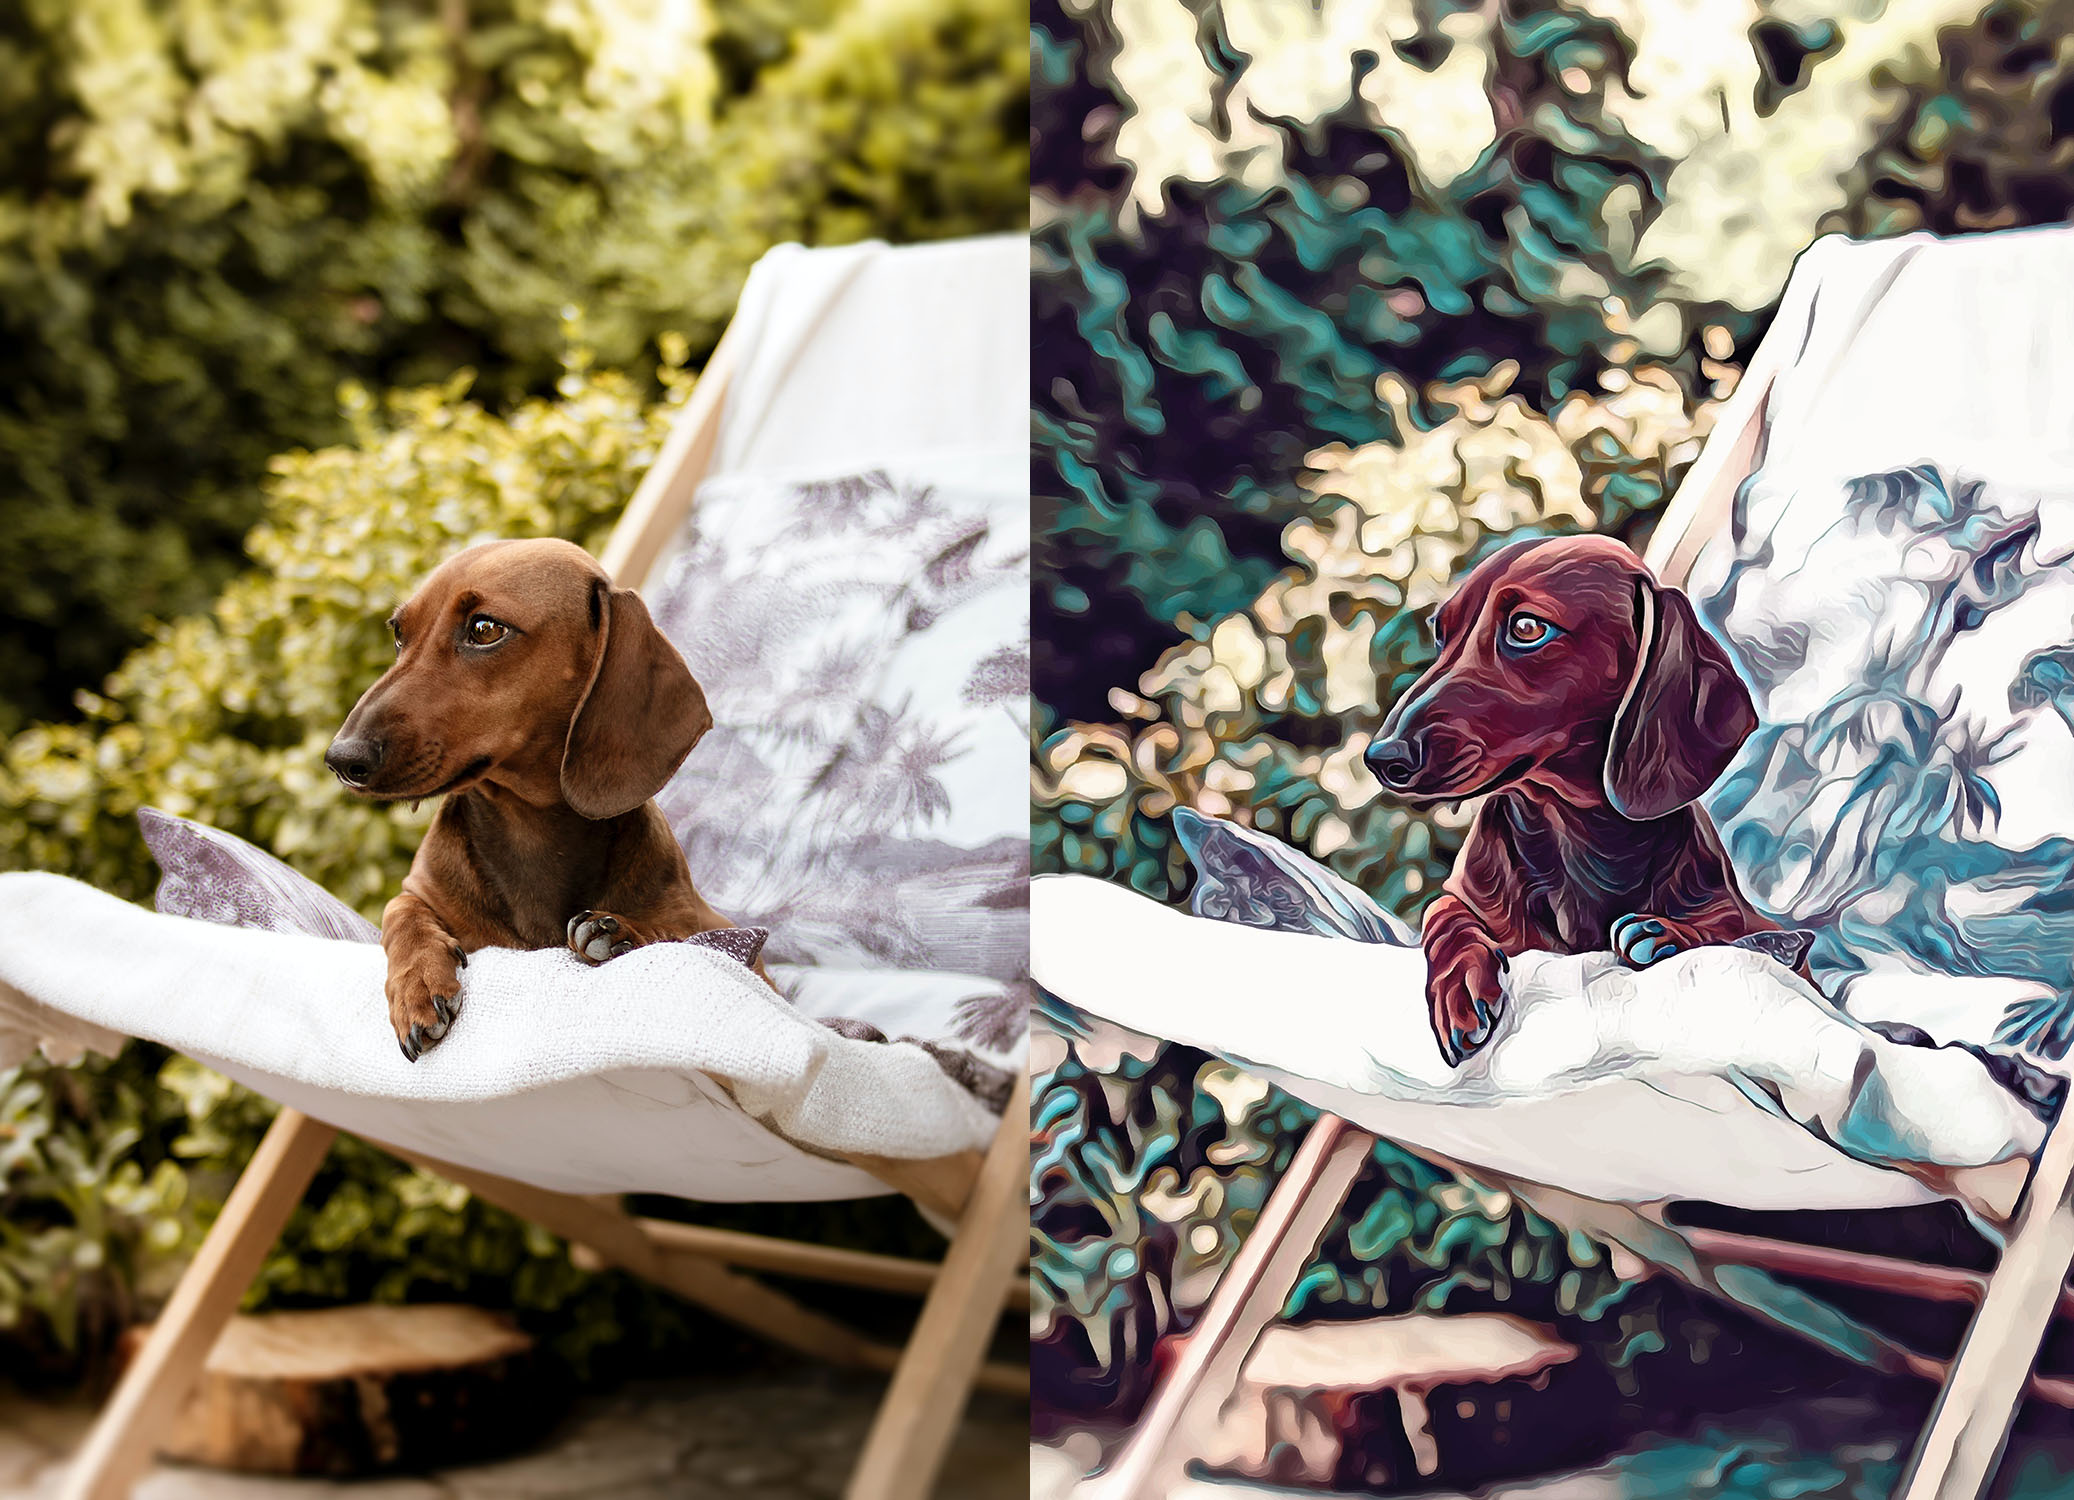 Before and after stylized image of a dachshund lying on a patio chair